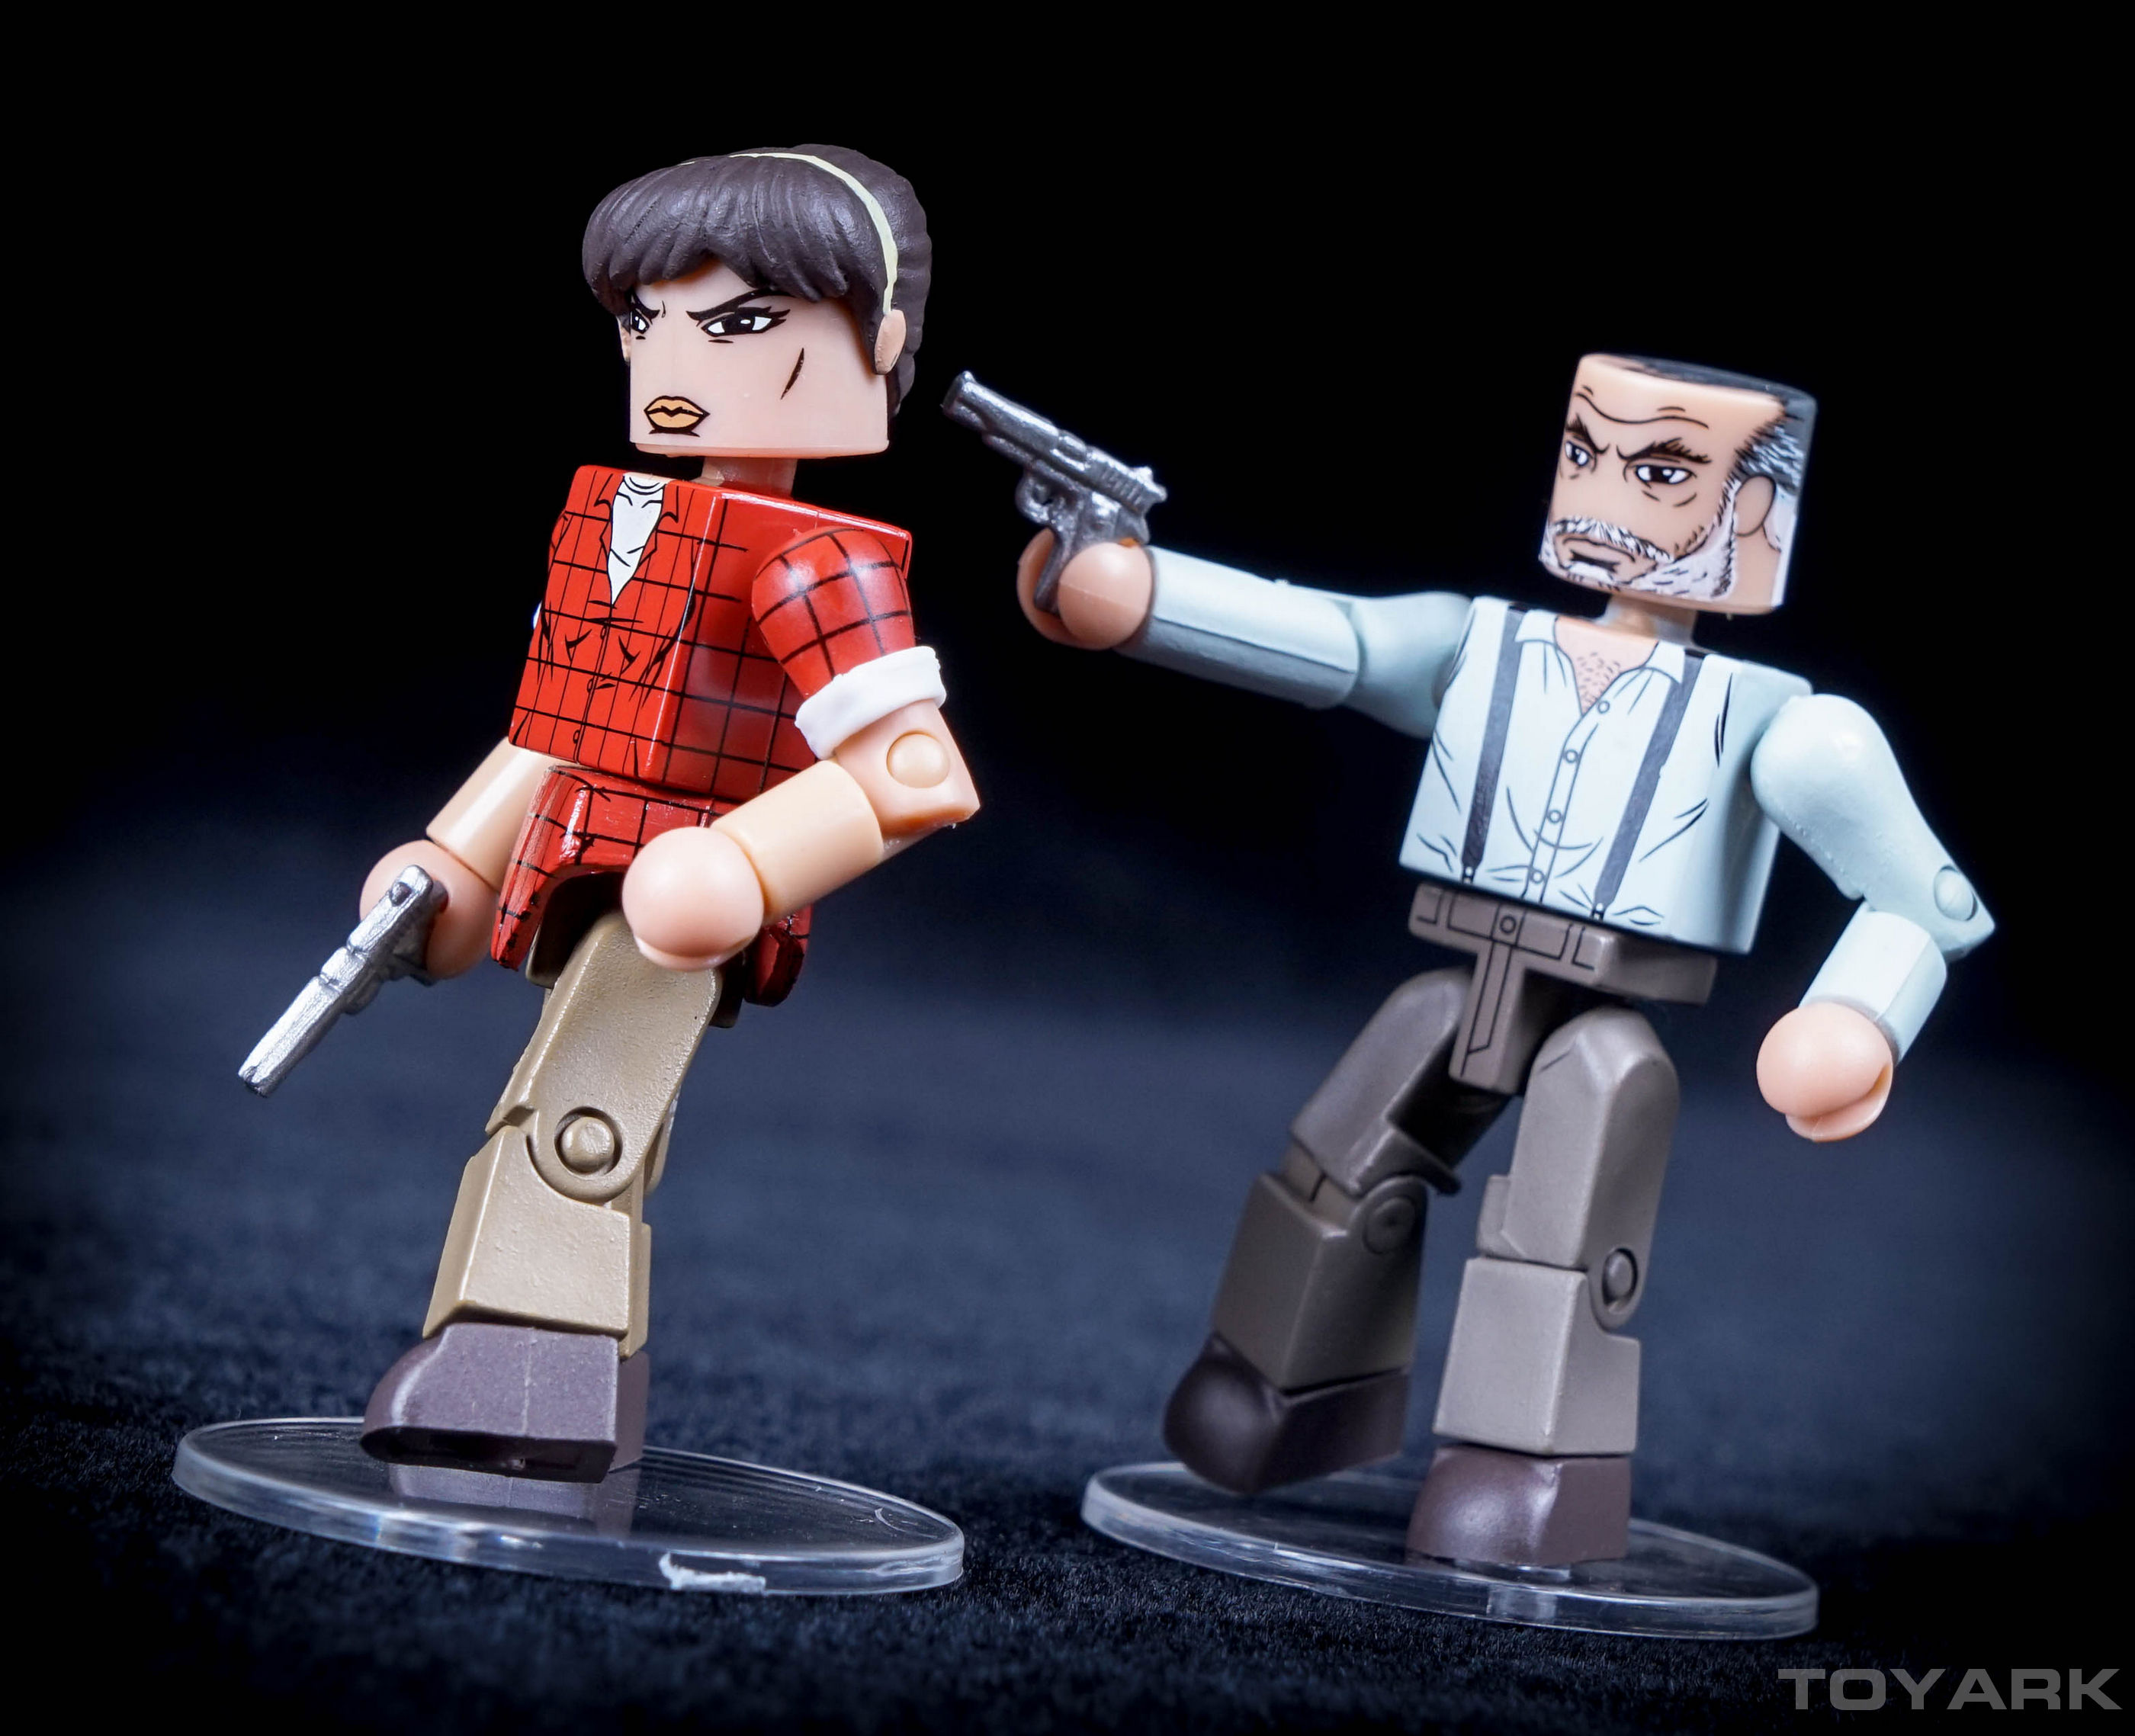 http://news.toyark.com/wp-content/uploads/sites/4/2015/11/Walking-Dead-S8-Minimates-091.jpg